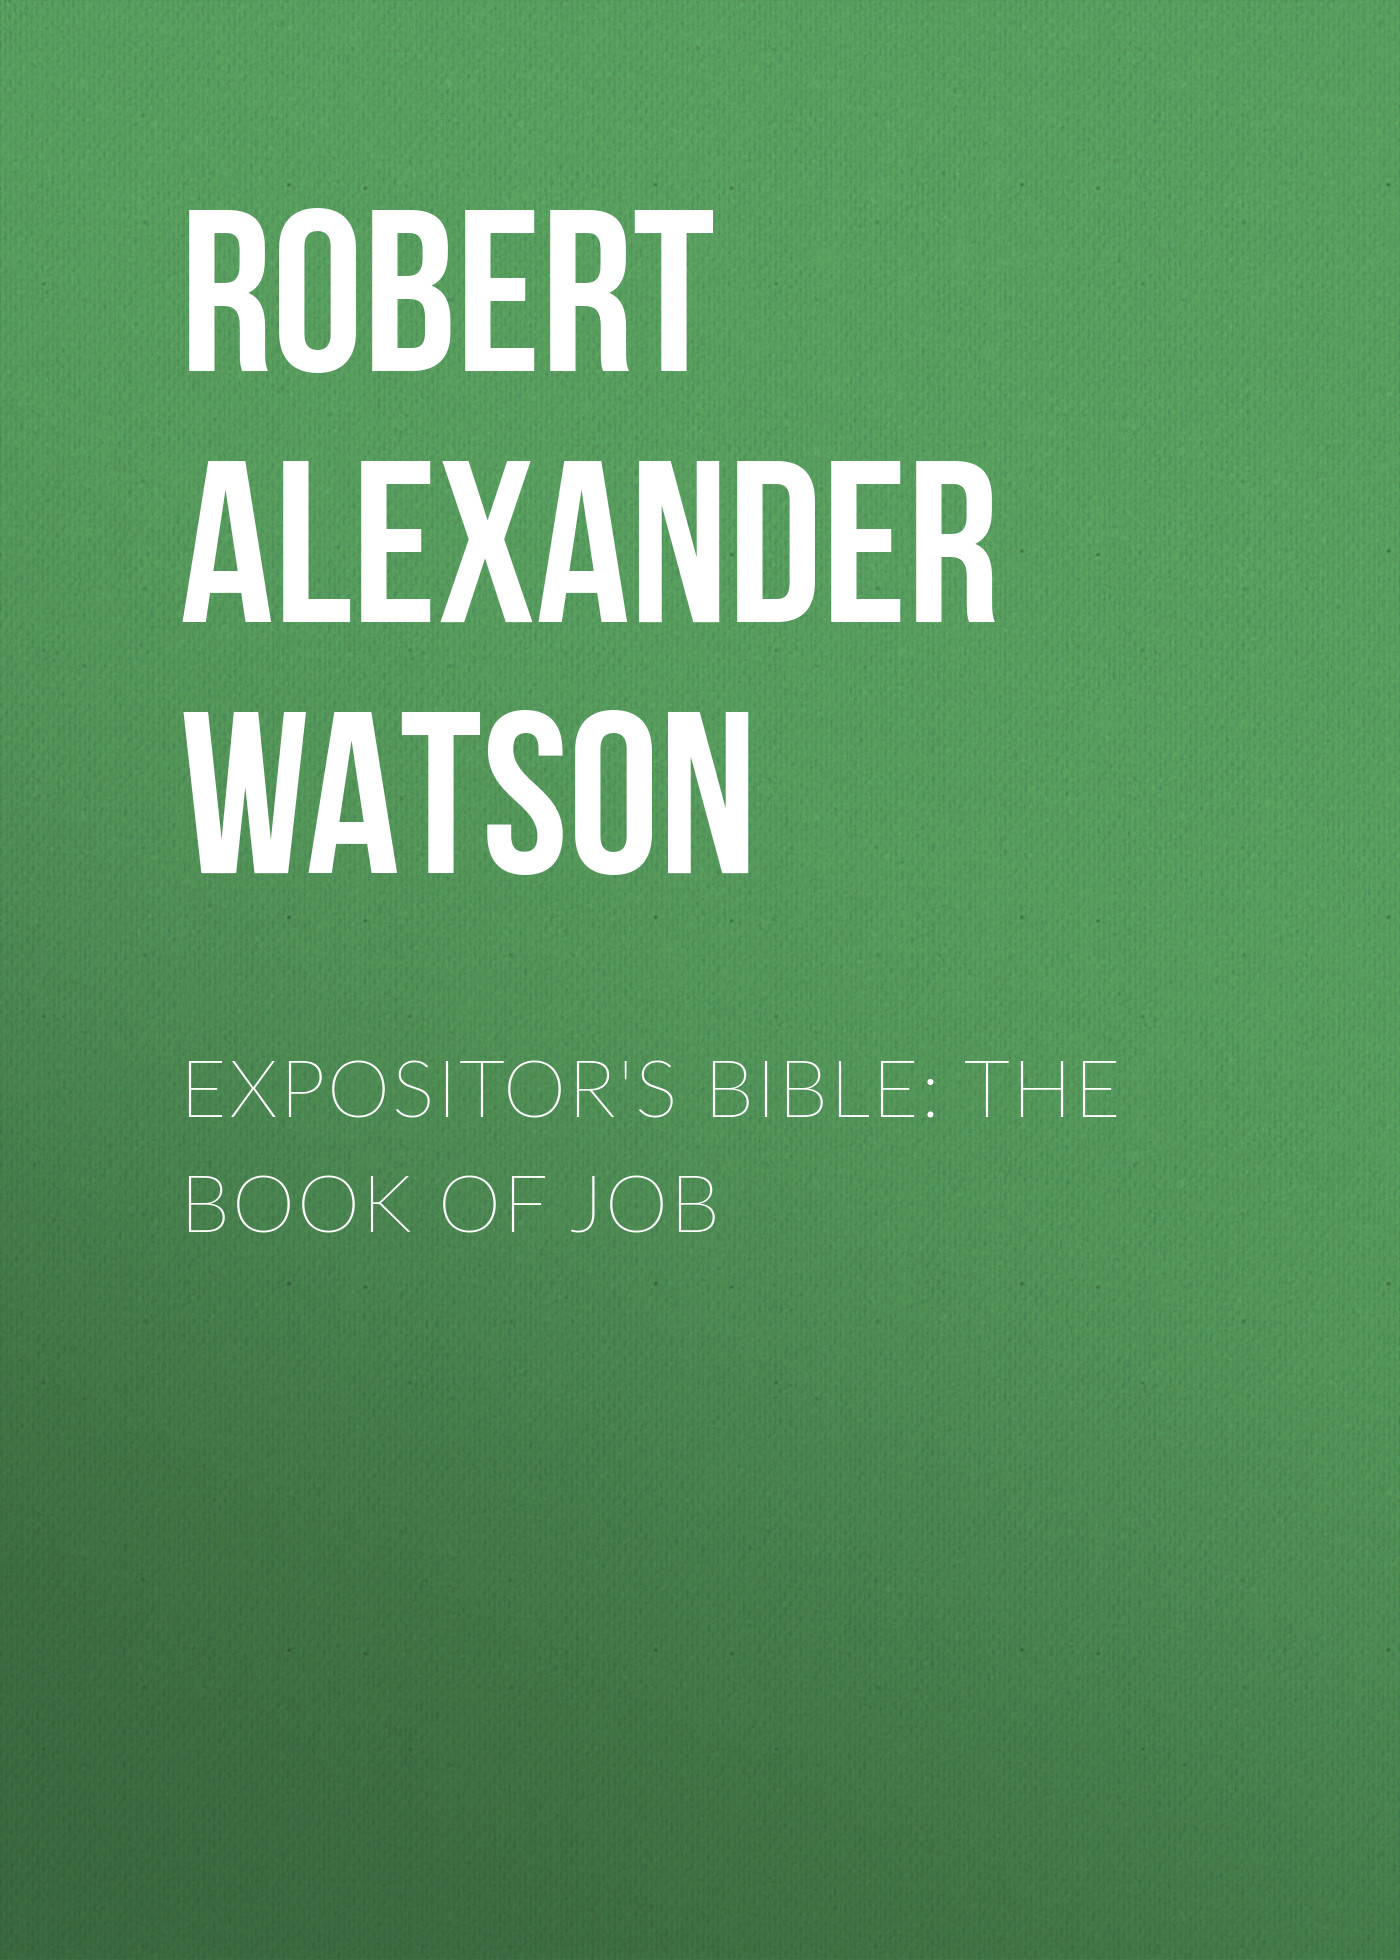 Robert Alexander Watson Expositor's Bible: The Book of Job robert alexander watson the expositor s bible judges and ruth